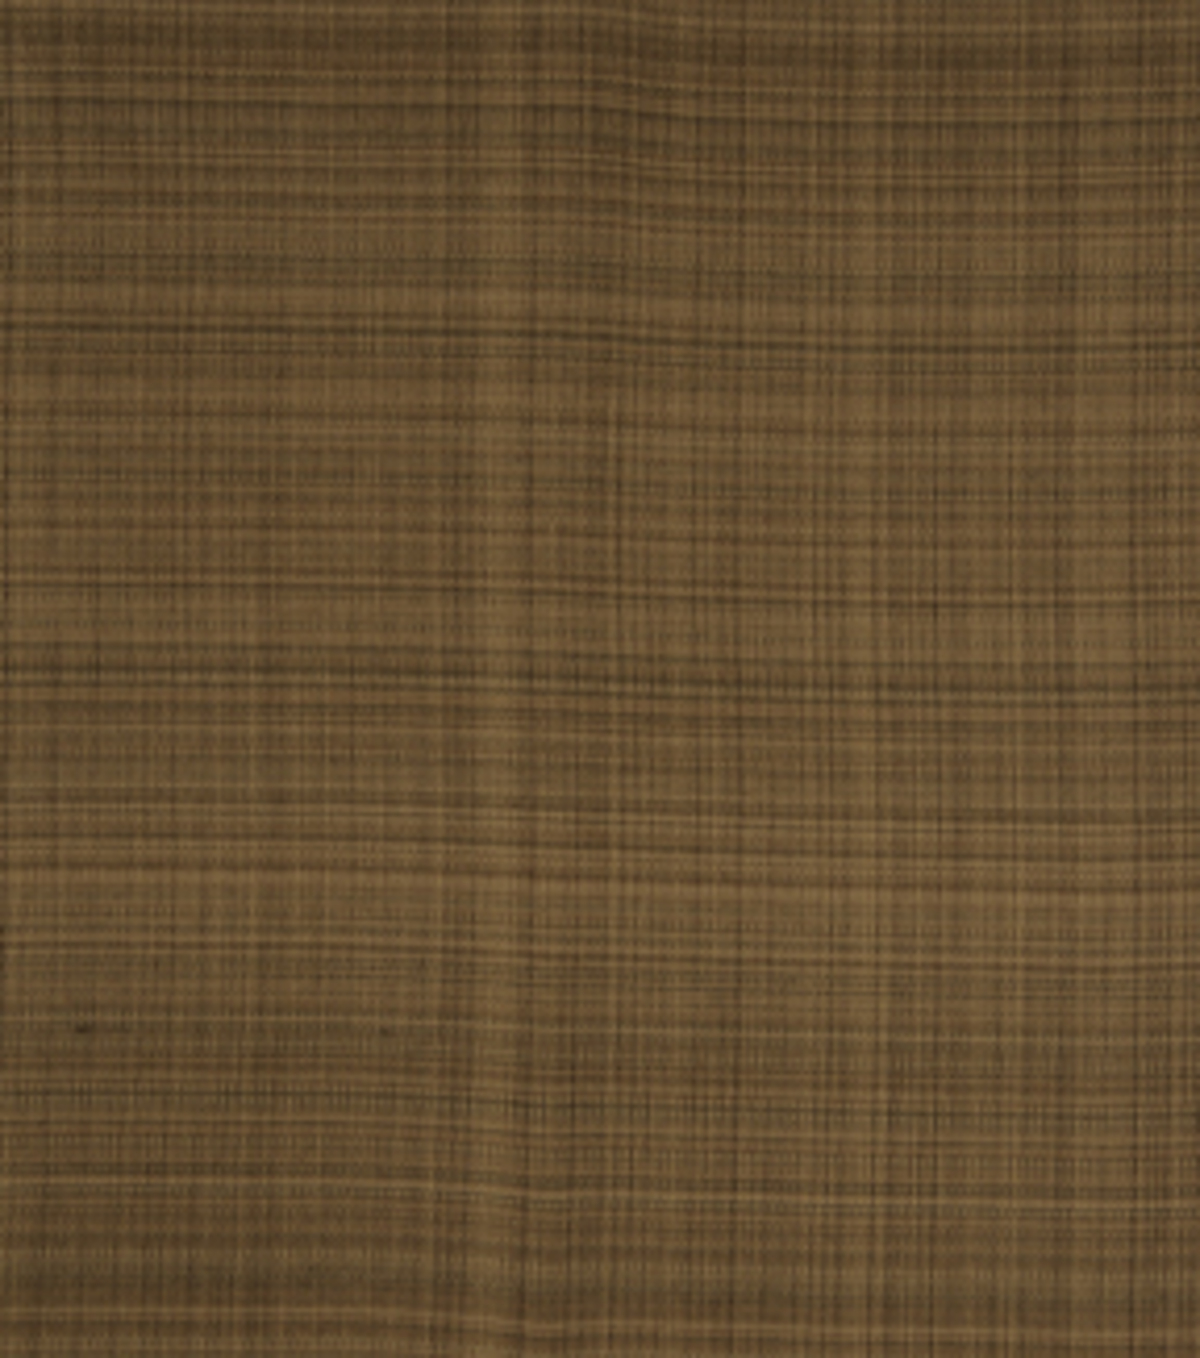 Home Decor 8\u0022x8\u0022 Fabric Swatch-Bella Dura Antelope Umber